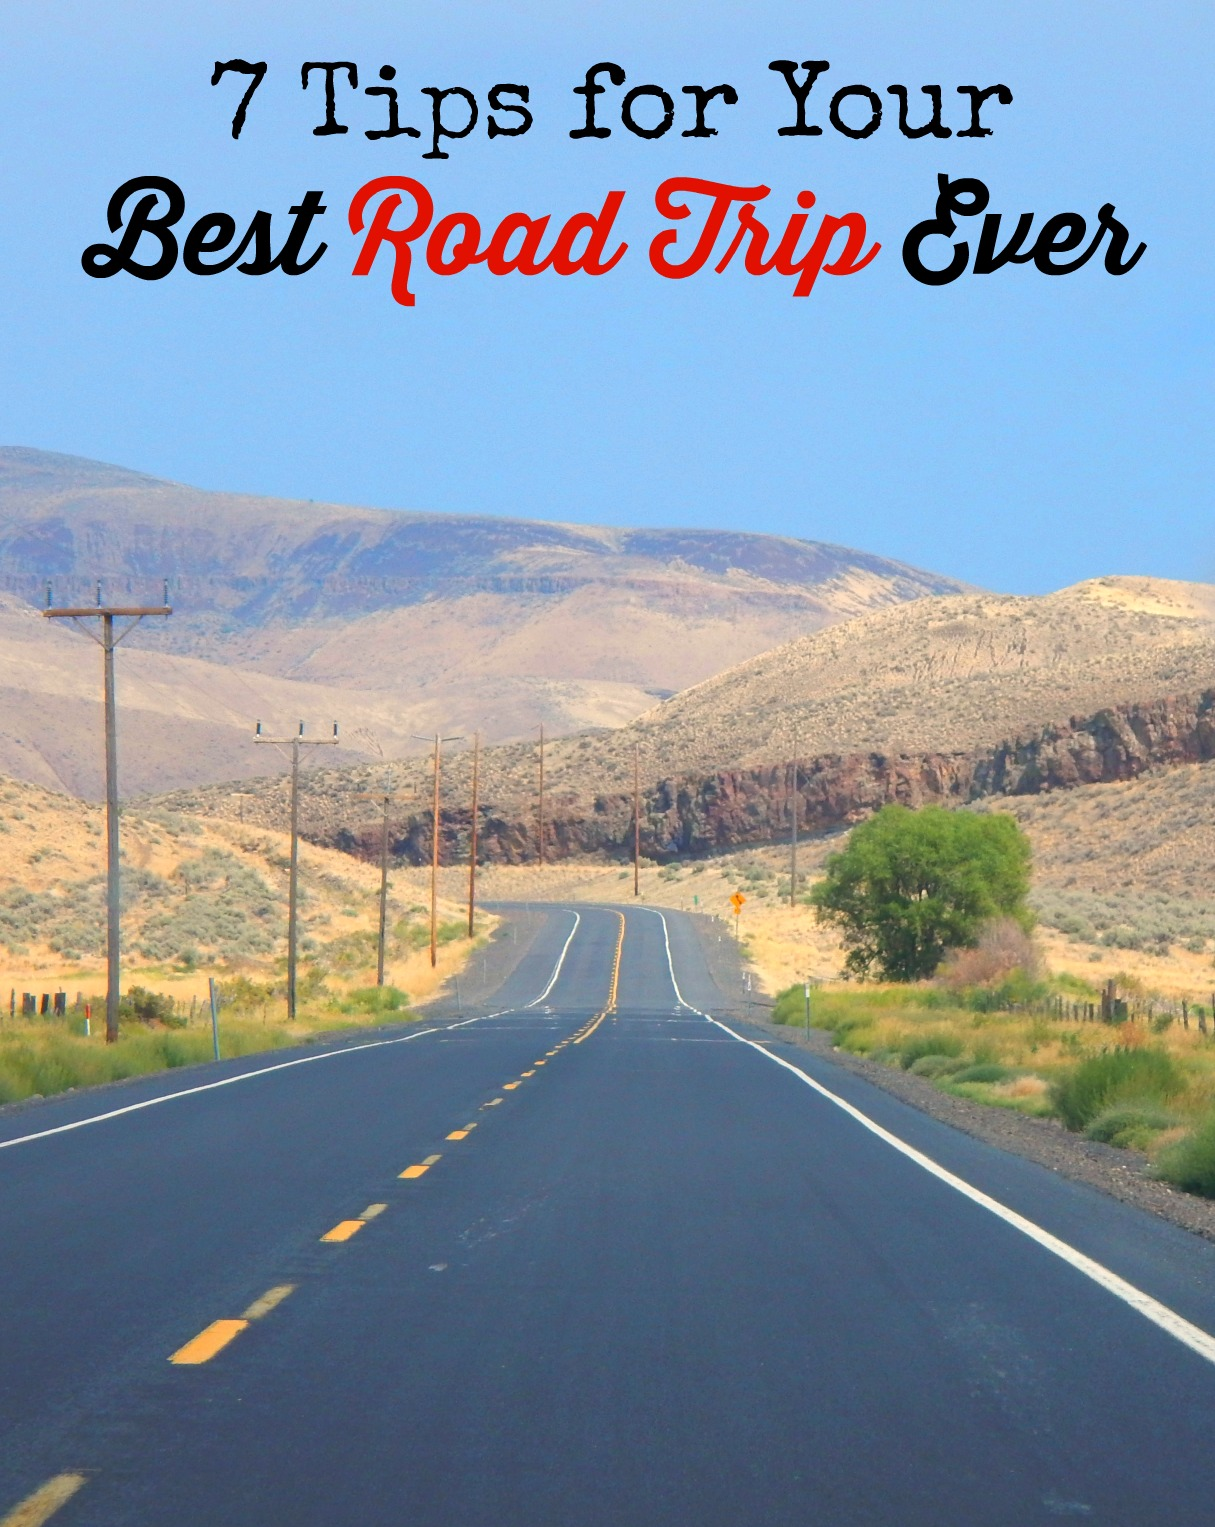 7 Tips for your Best Road Trip Ever